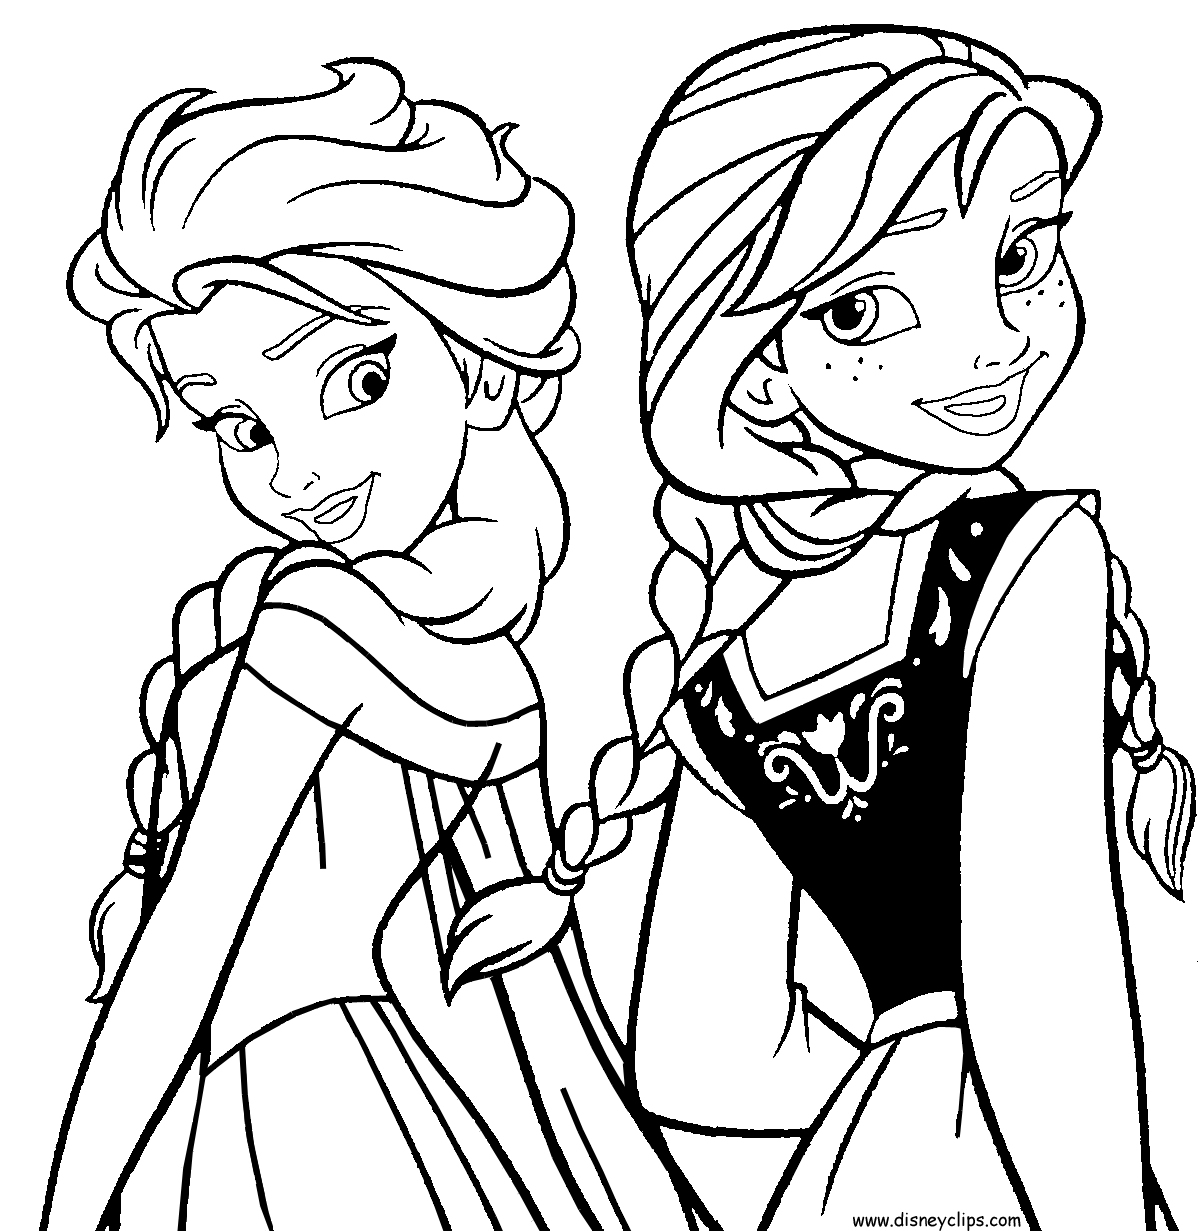 Coloring Pages ~ Free Frozen Coloring Pages For - Free Printable Coloring Pages Disney Frozen